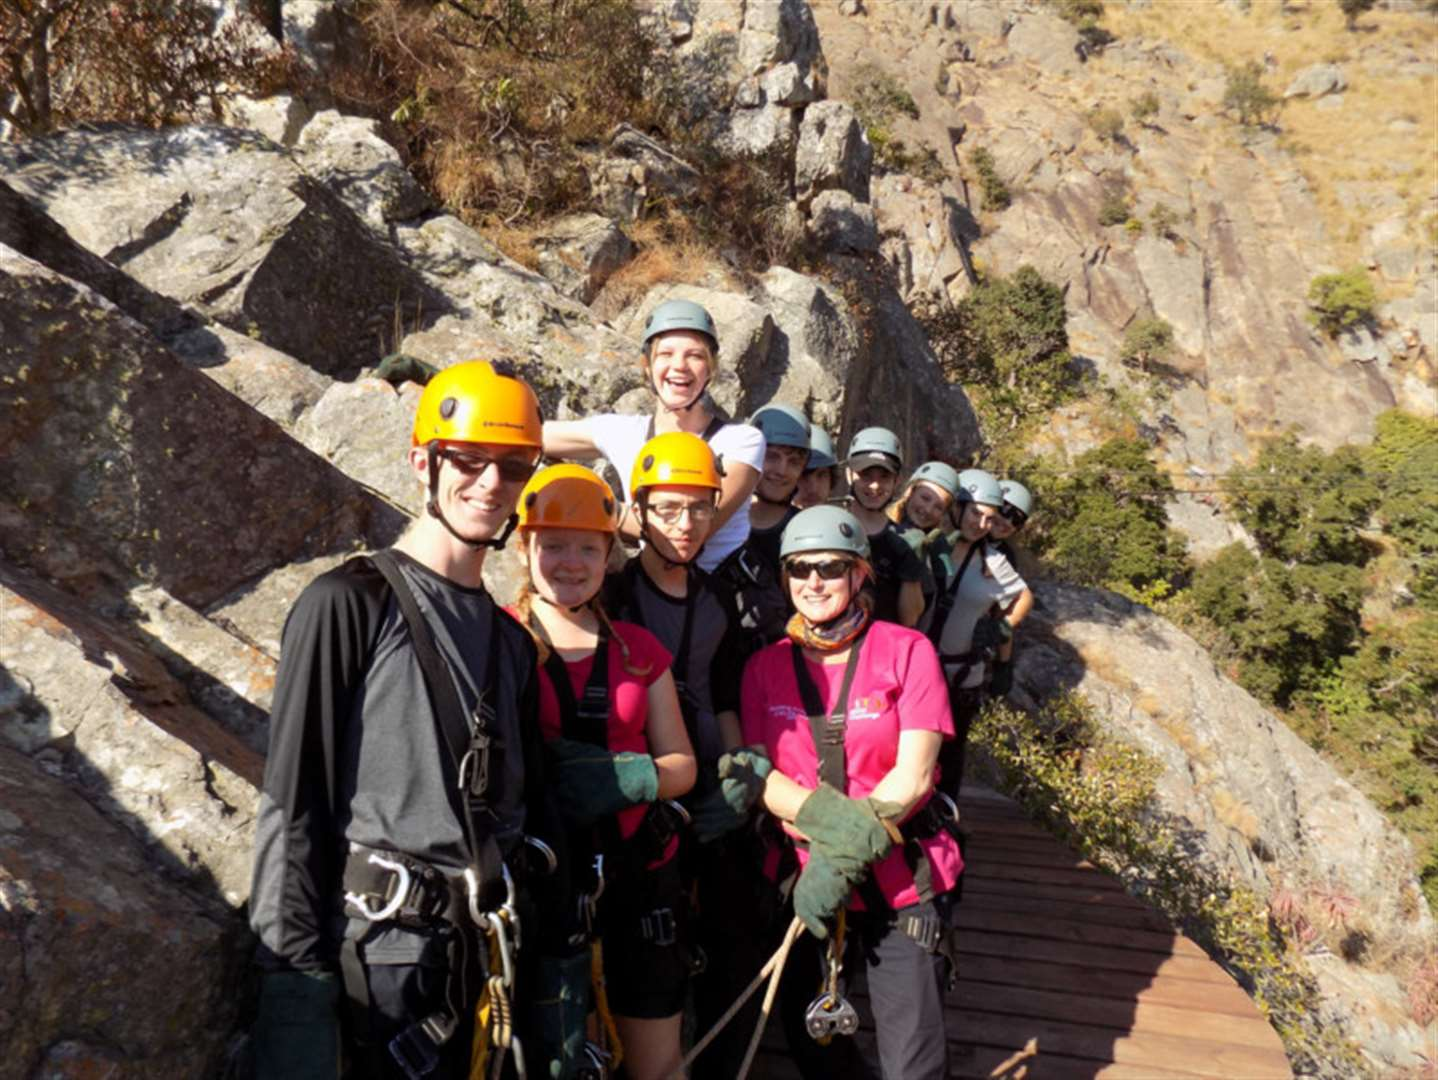 Spalding Academy student recalls trip of a lifetime